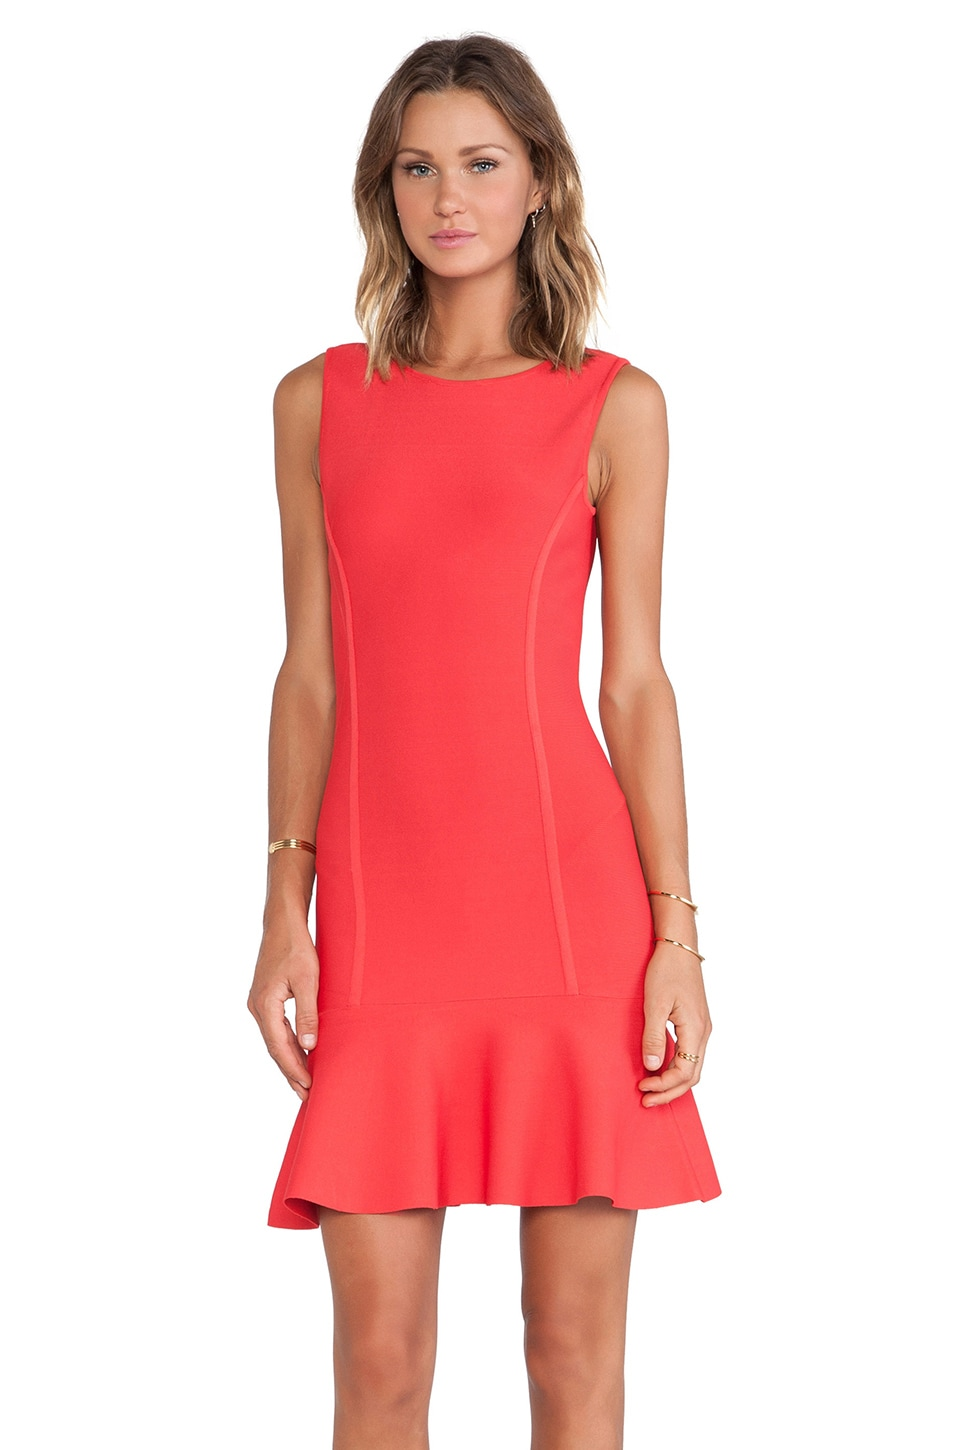 BCBGMAXAZRIA Padma U Back Dress in Red Berry